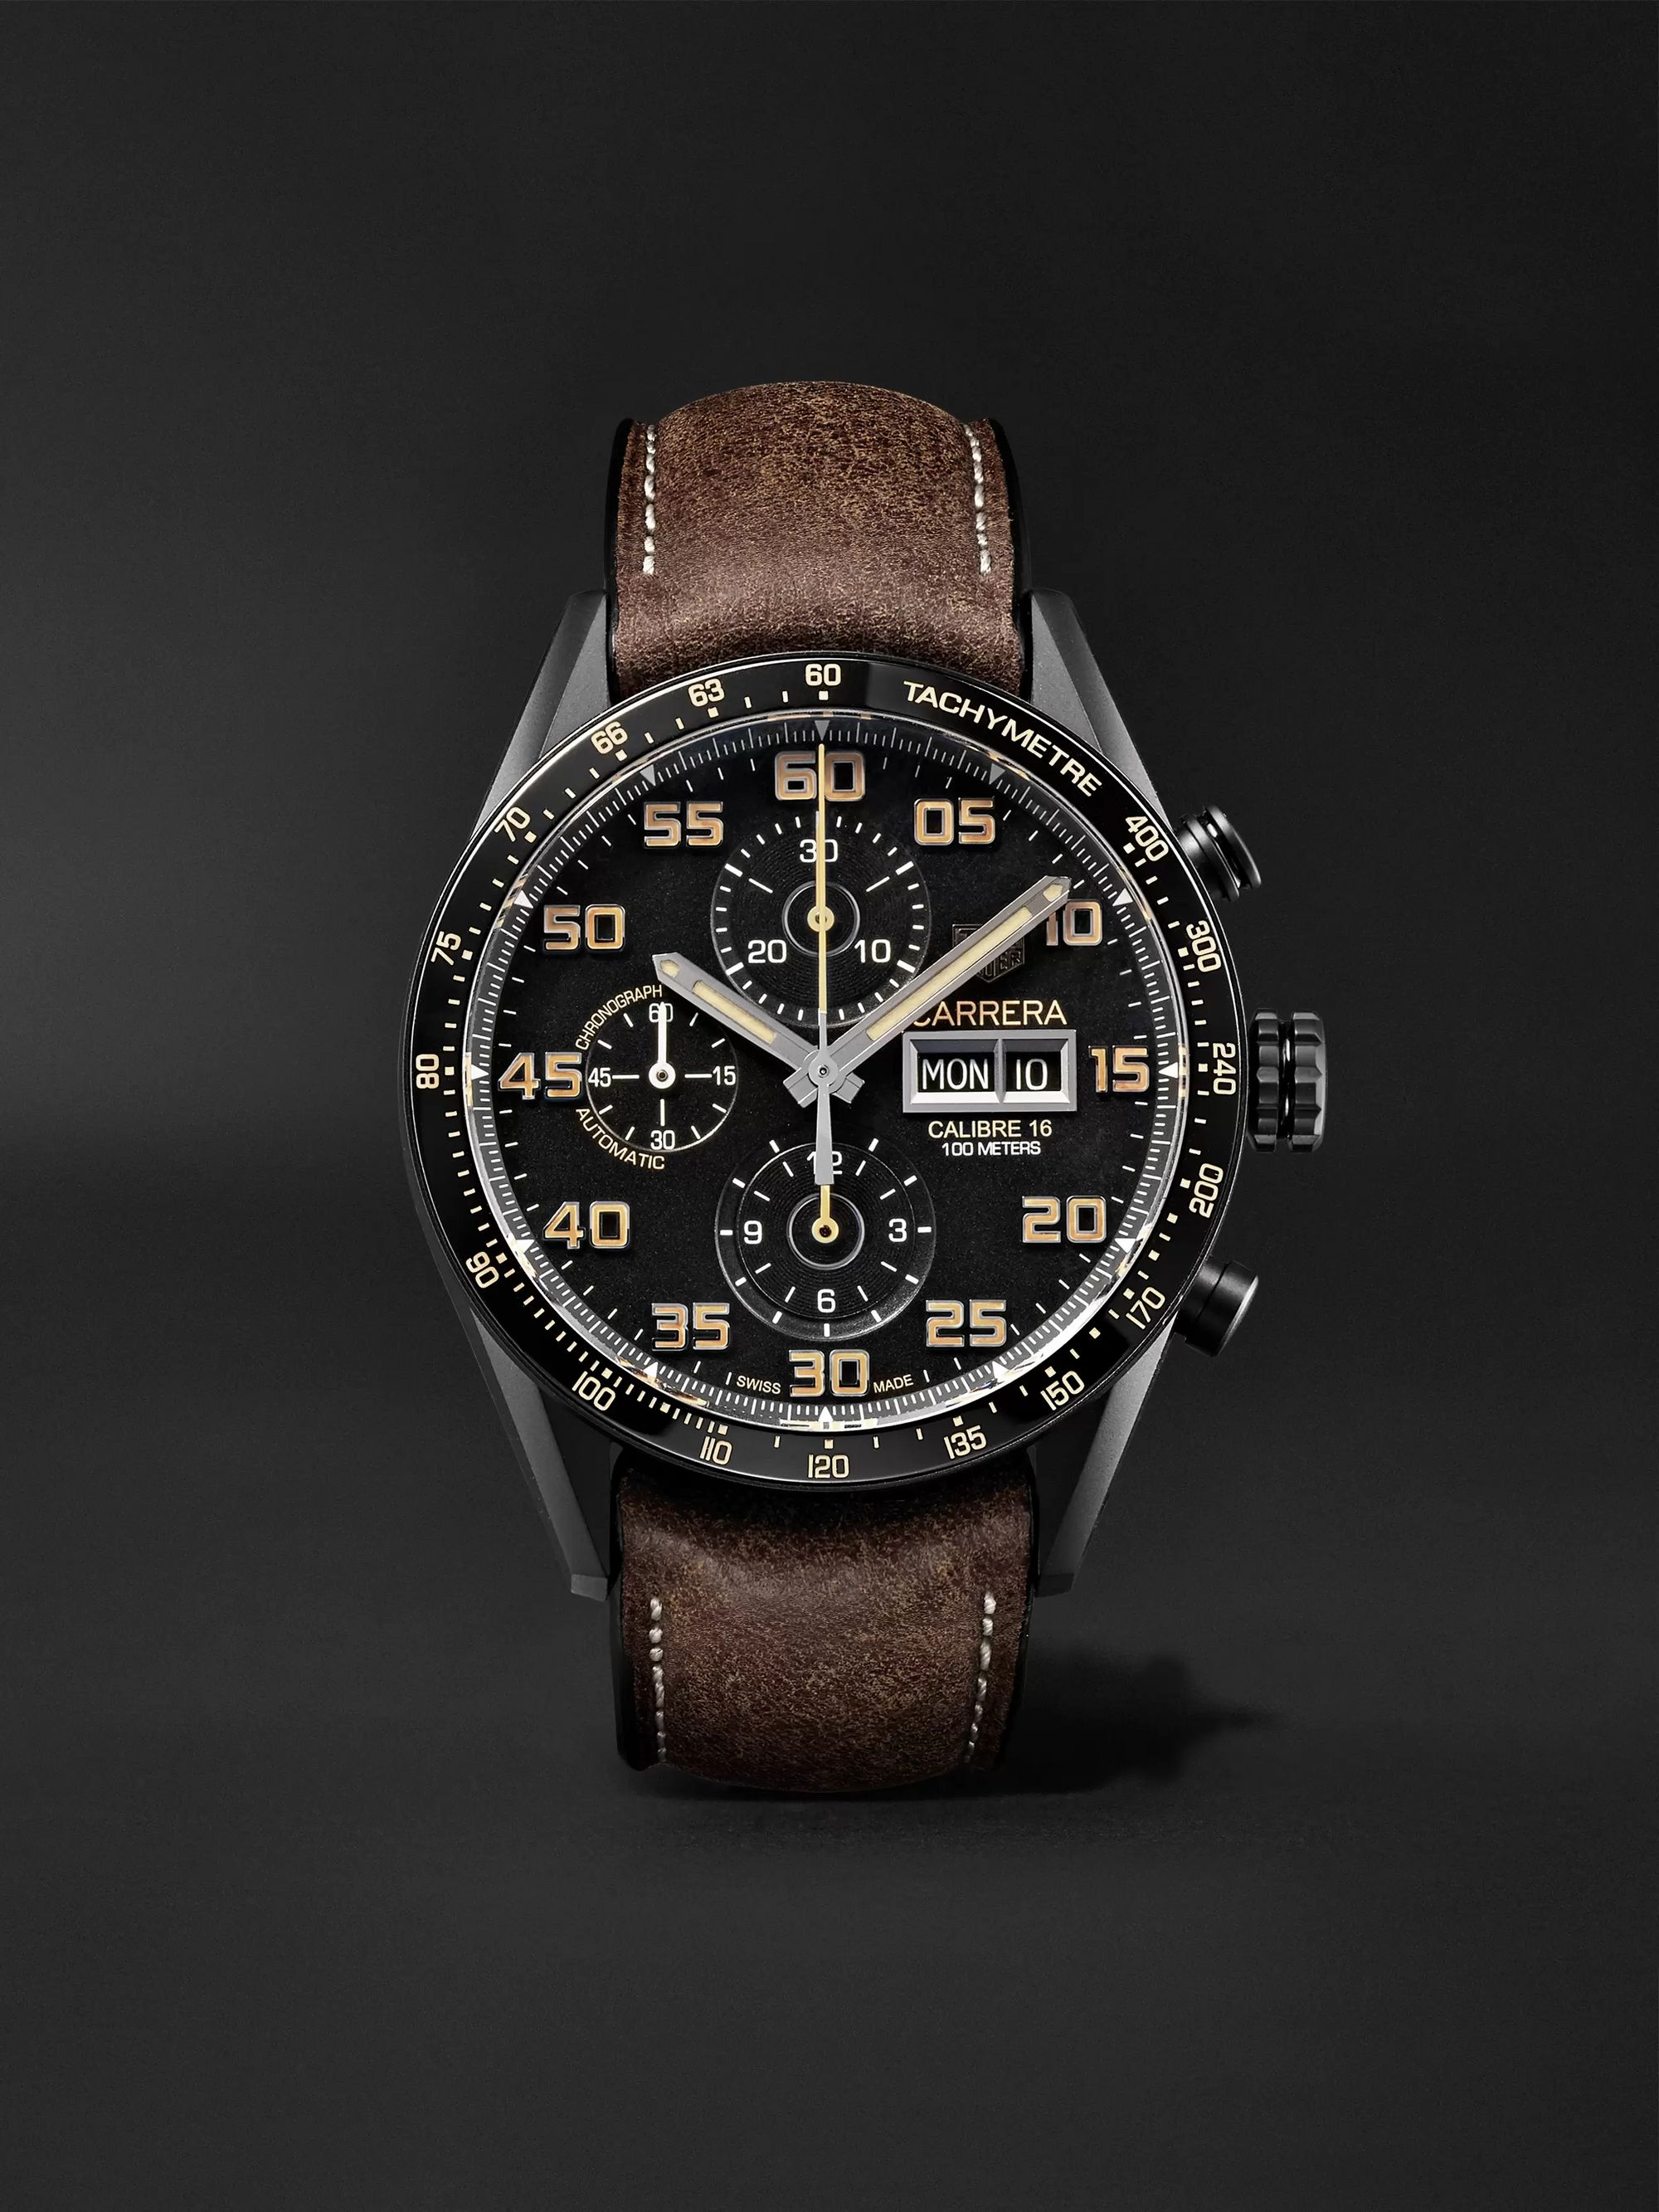 TAG Heuer Carrera Automatic Chronograph 45mm Titanium and Leather Watch, Ref. No. CV2A84.FC6394